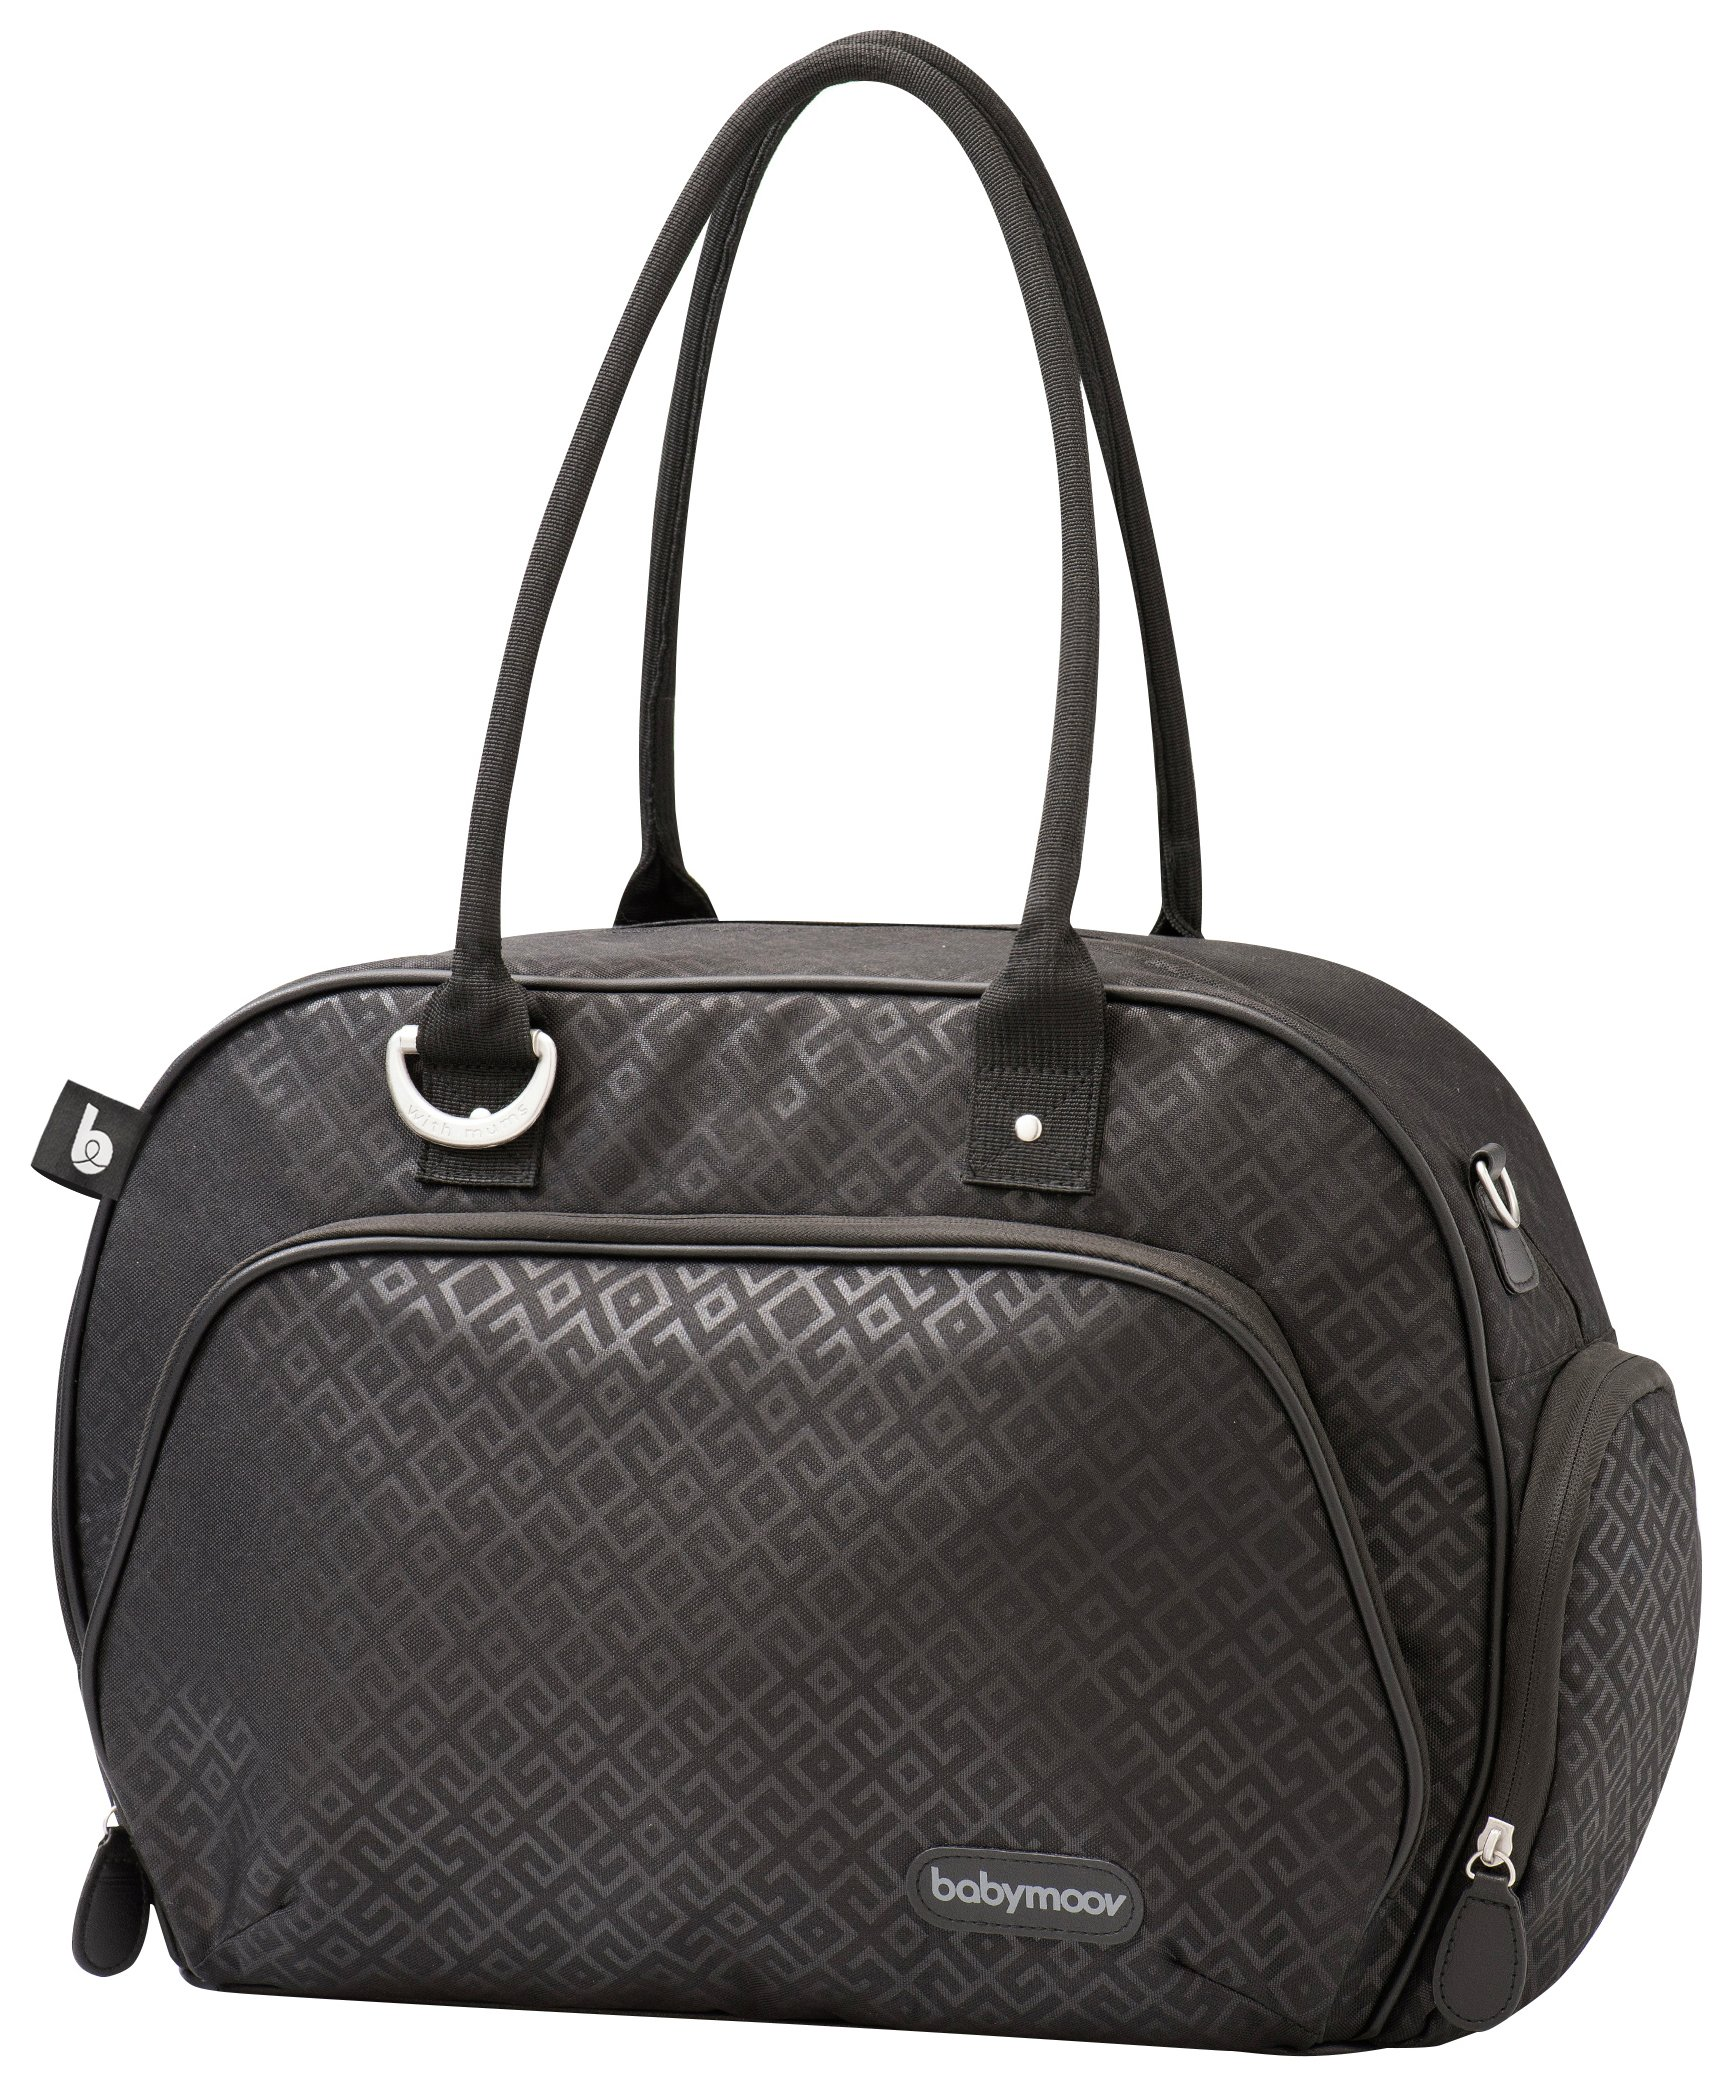 Babymoov Black Trendy Bag